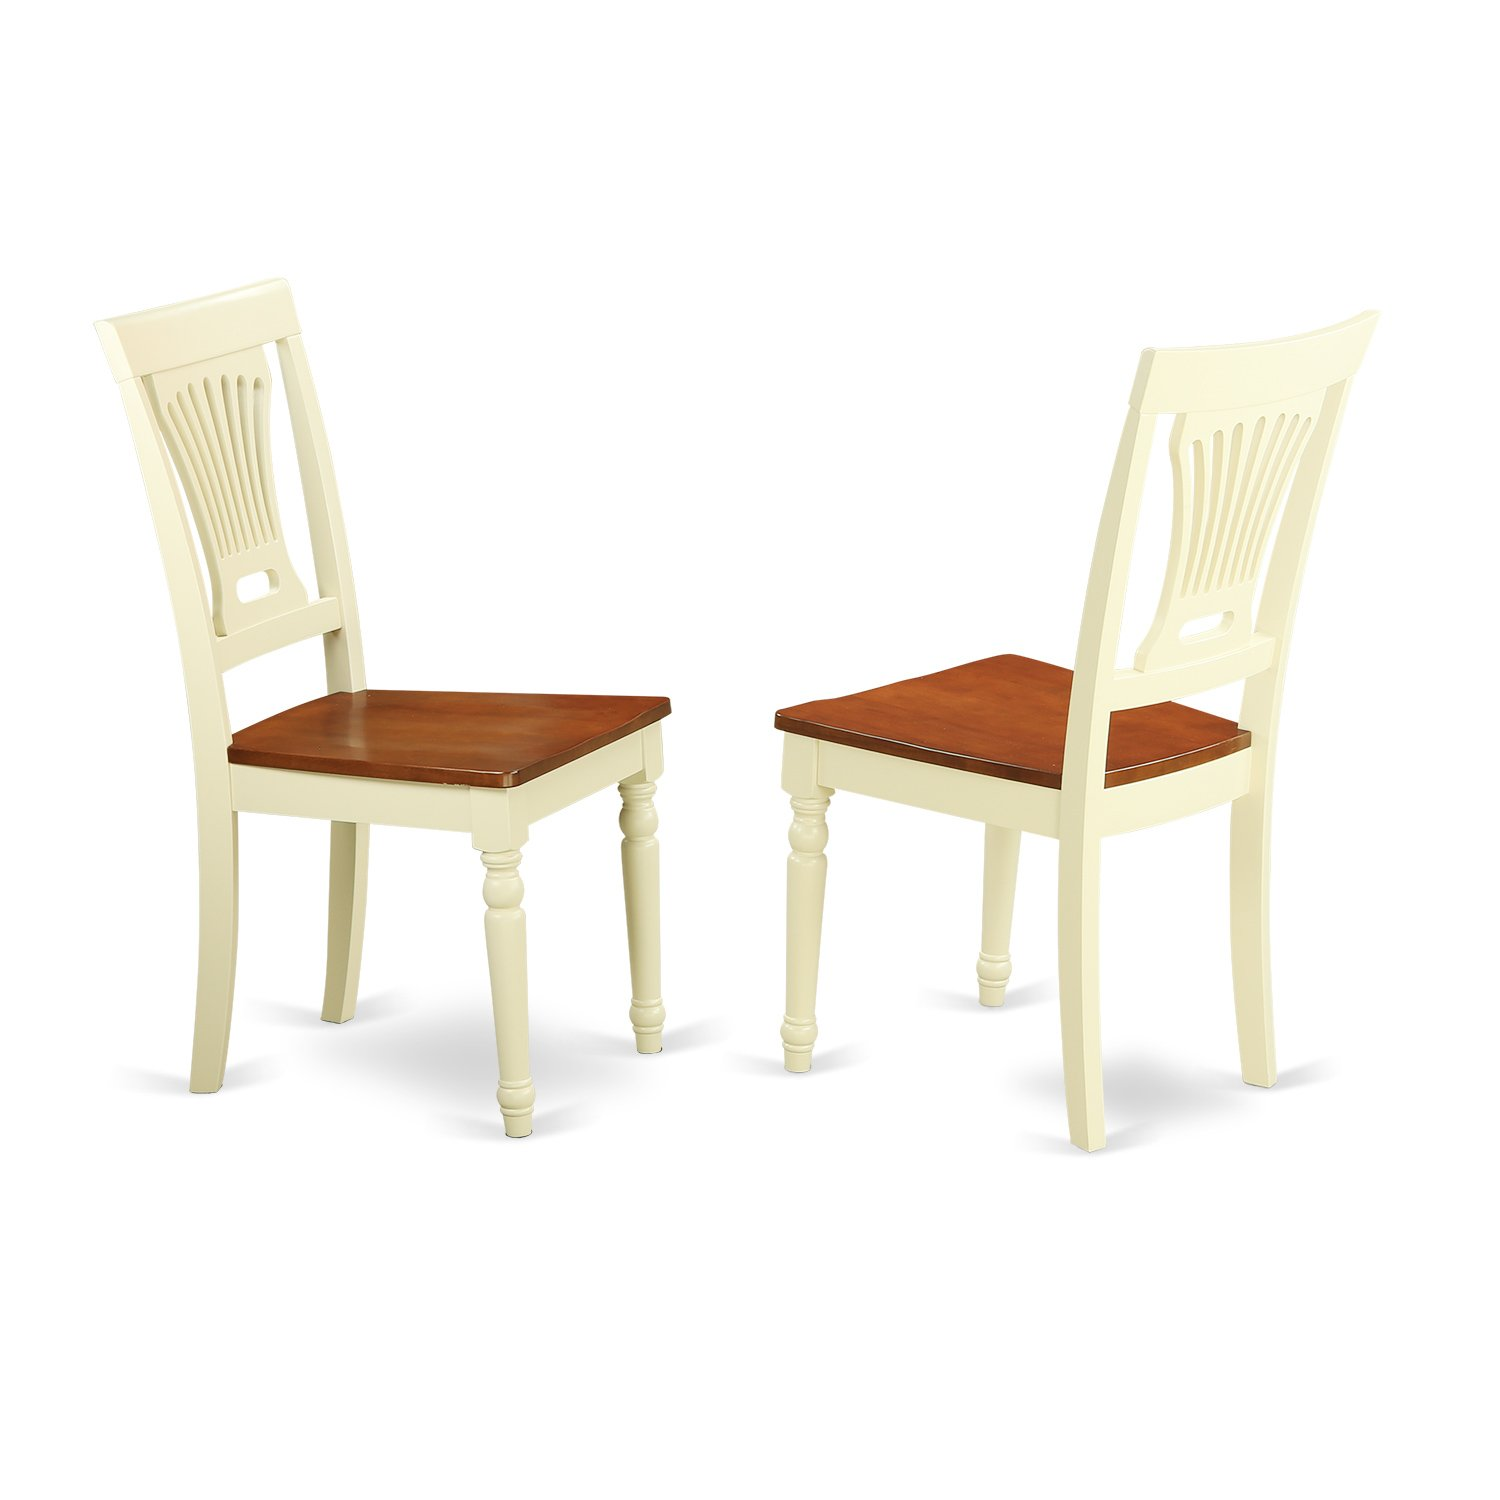 East West Furniture PVC-WHI-W Kitchen/Dining Chair Set Wood Seat, Buttermilk/Cherry Finish, Set of 2 by East West Furniture